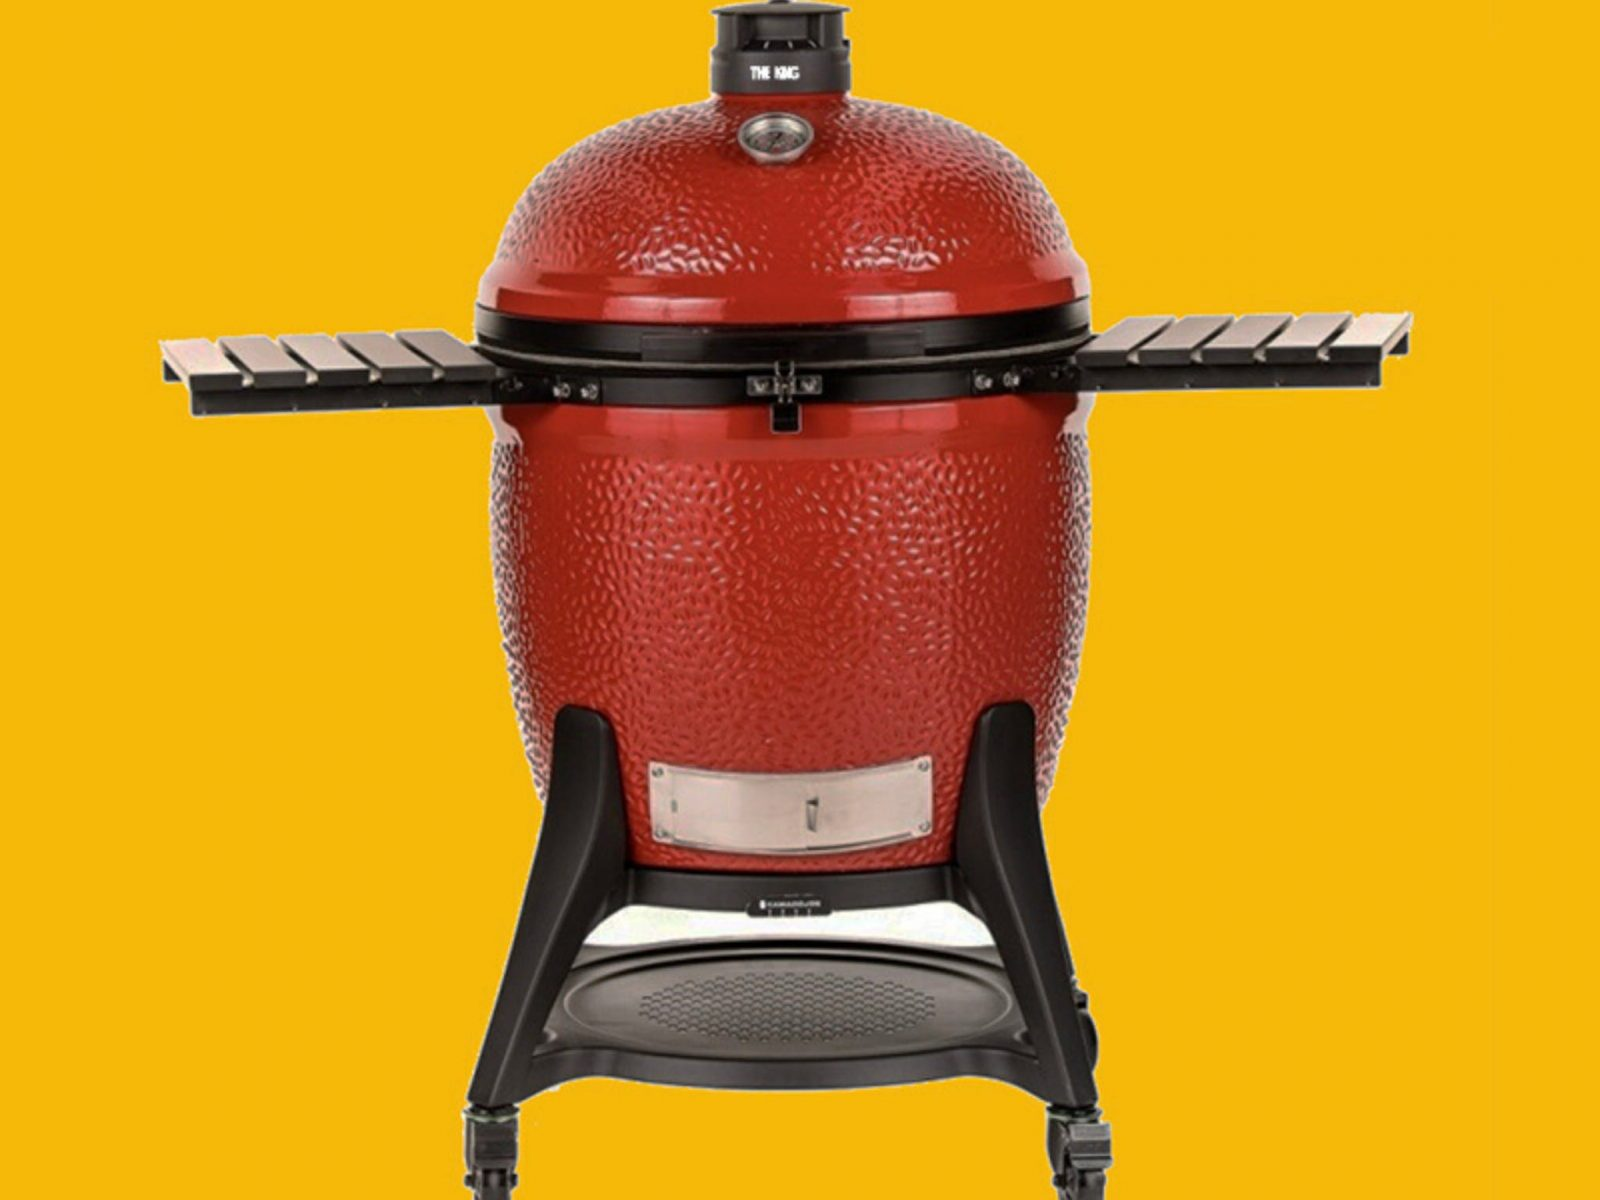 A bright red barbeque sits on a yellow background.